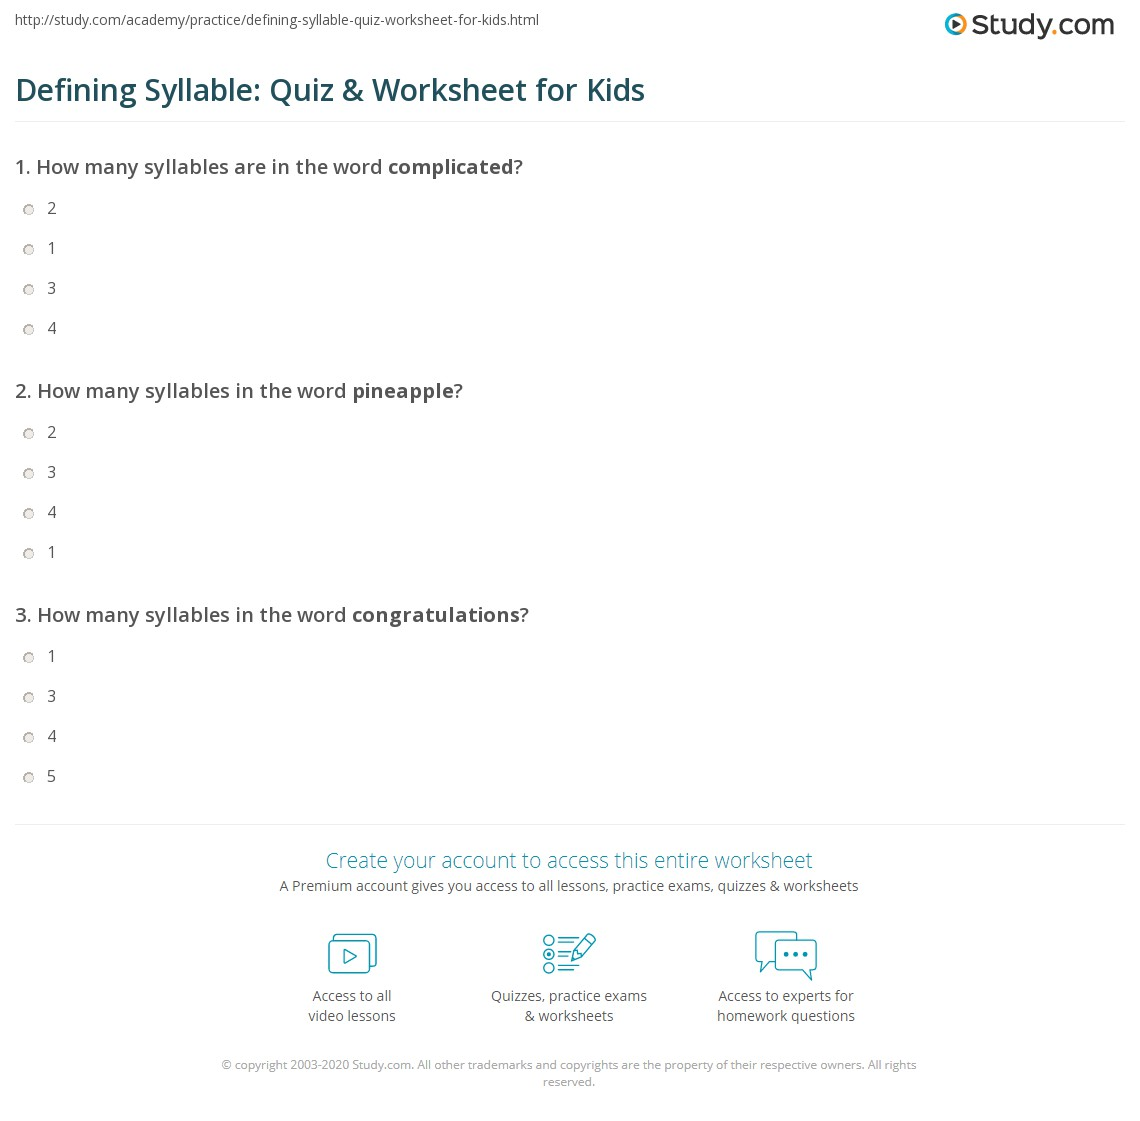 Defining Syllable: Quiz & Worksheet for Kids   Study.com